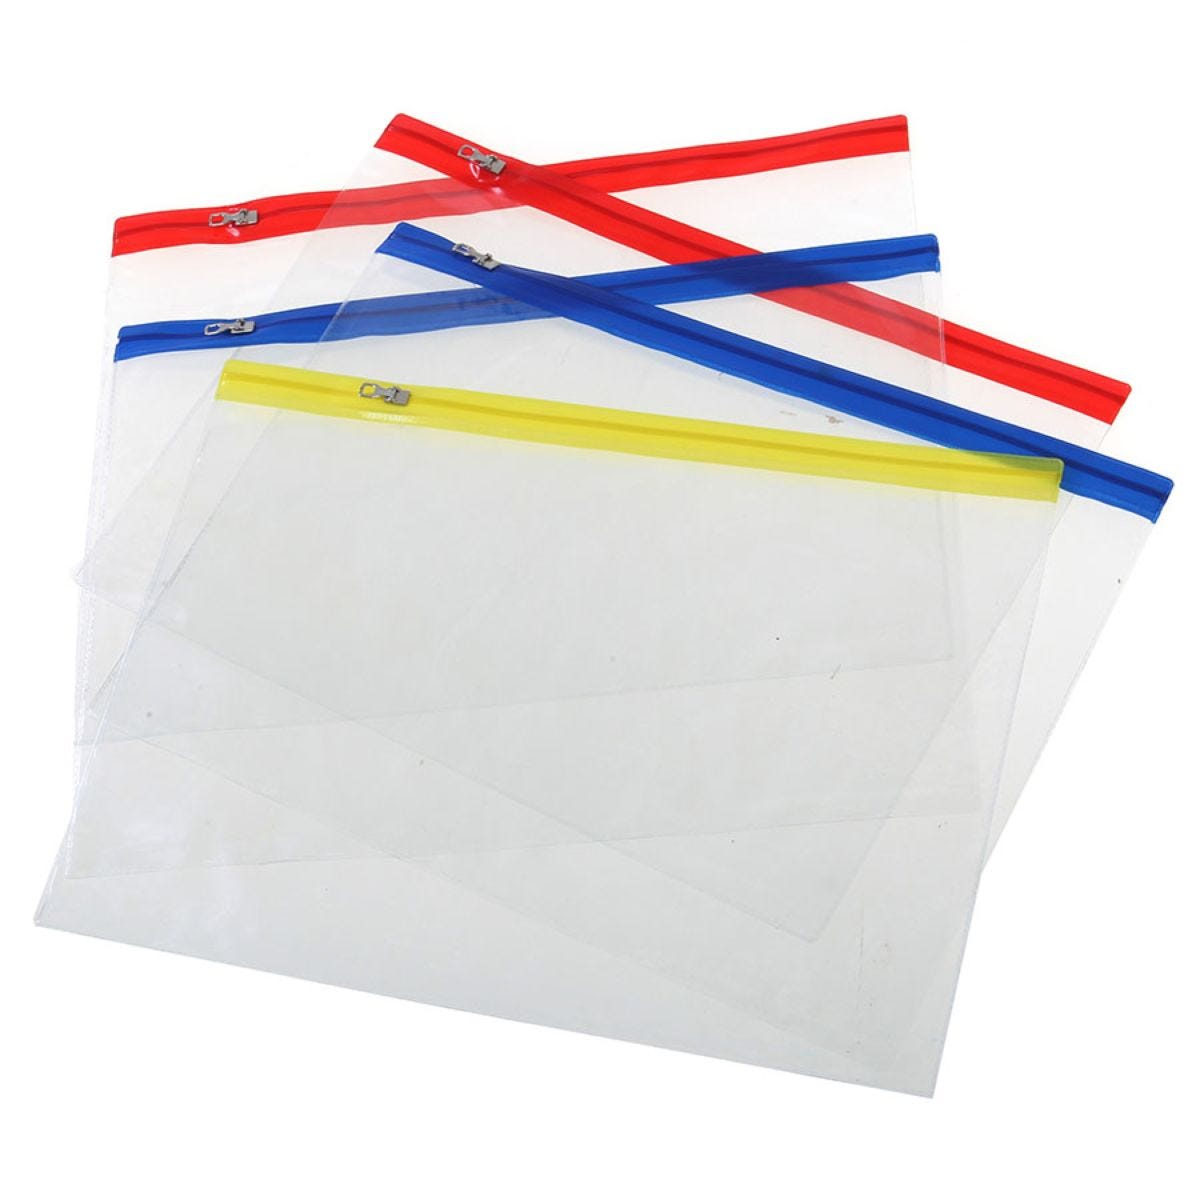 Ryman A4 Zip Bags – Pack of 5